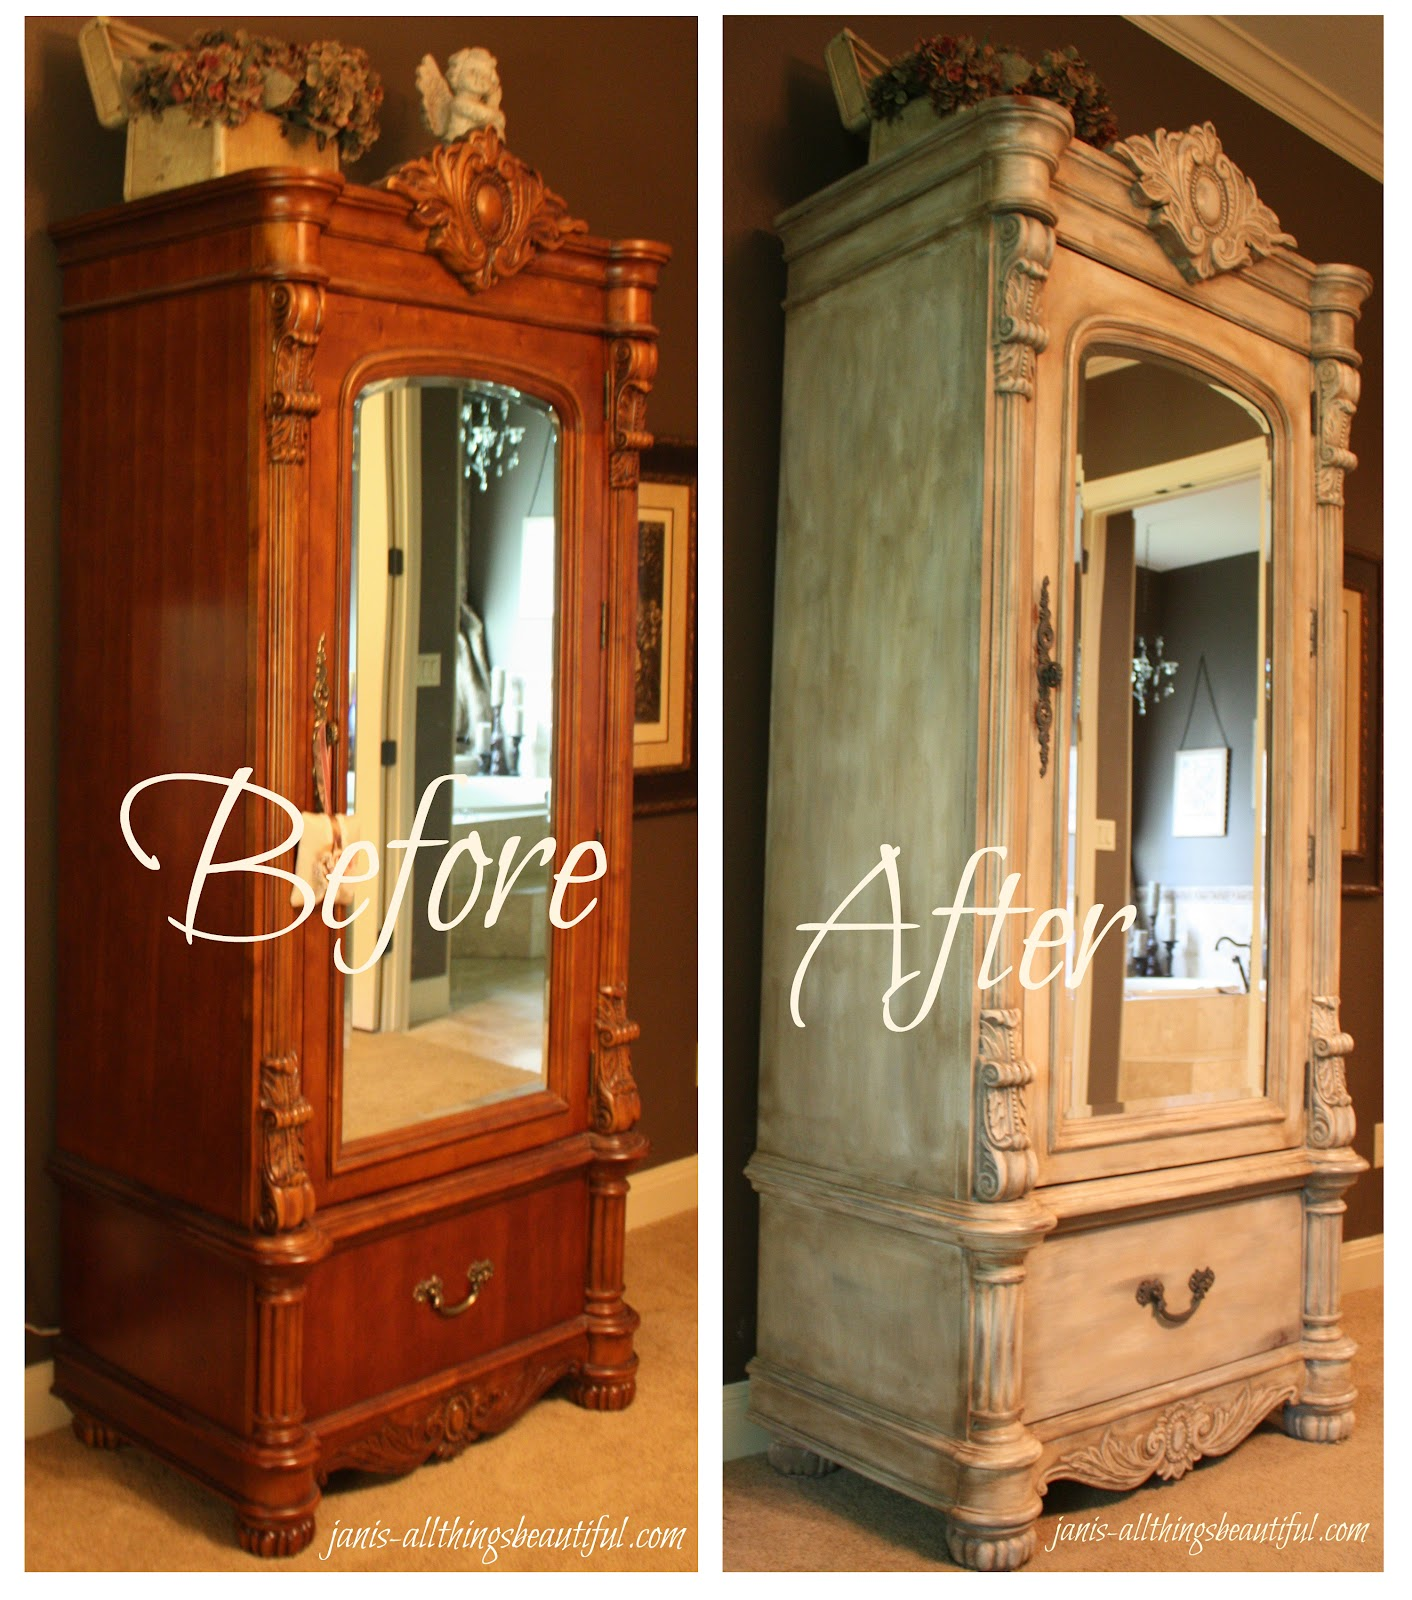 Armoire {Painted Furniture} Makeover. Full resolution‎  portrait, nominally Width 1412 Height 1600 pixels, portrait with #B54610.